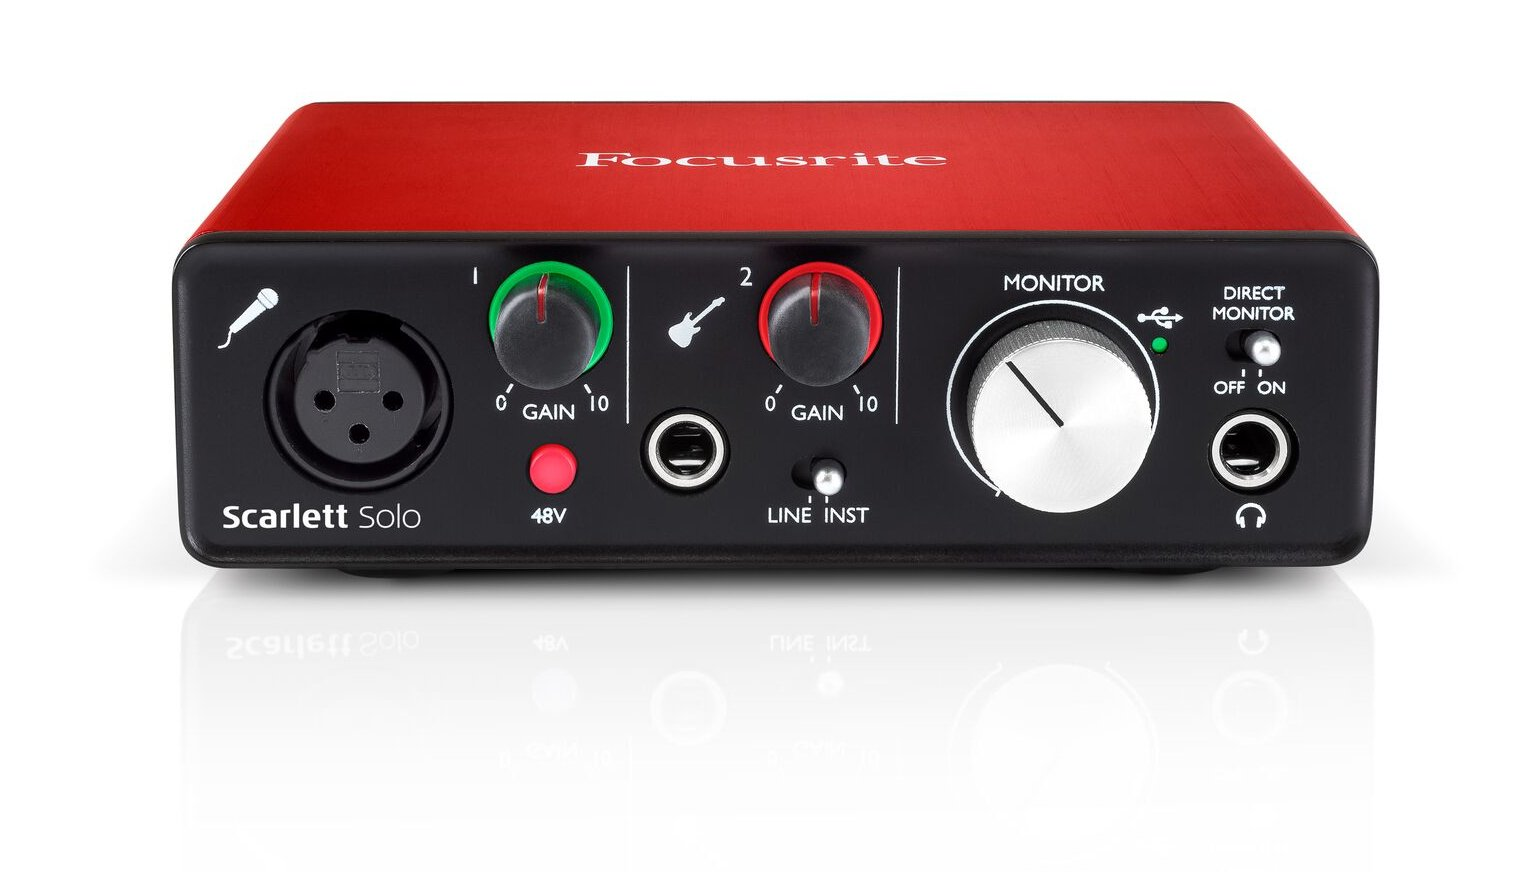 focusrite scarlett solo v2 2x2 usb audio interface with single micrphone preamp 2nd generation. Black Bedroom Furniture Sets. Home Design Ideas